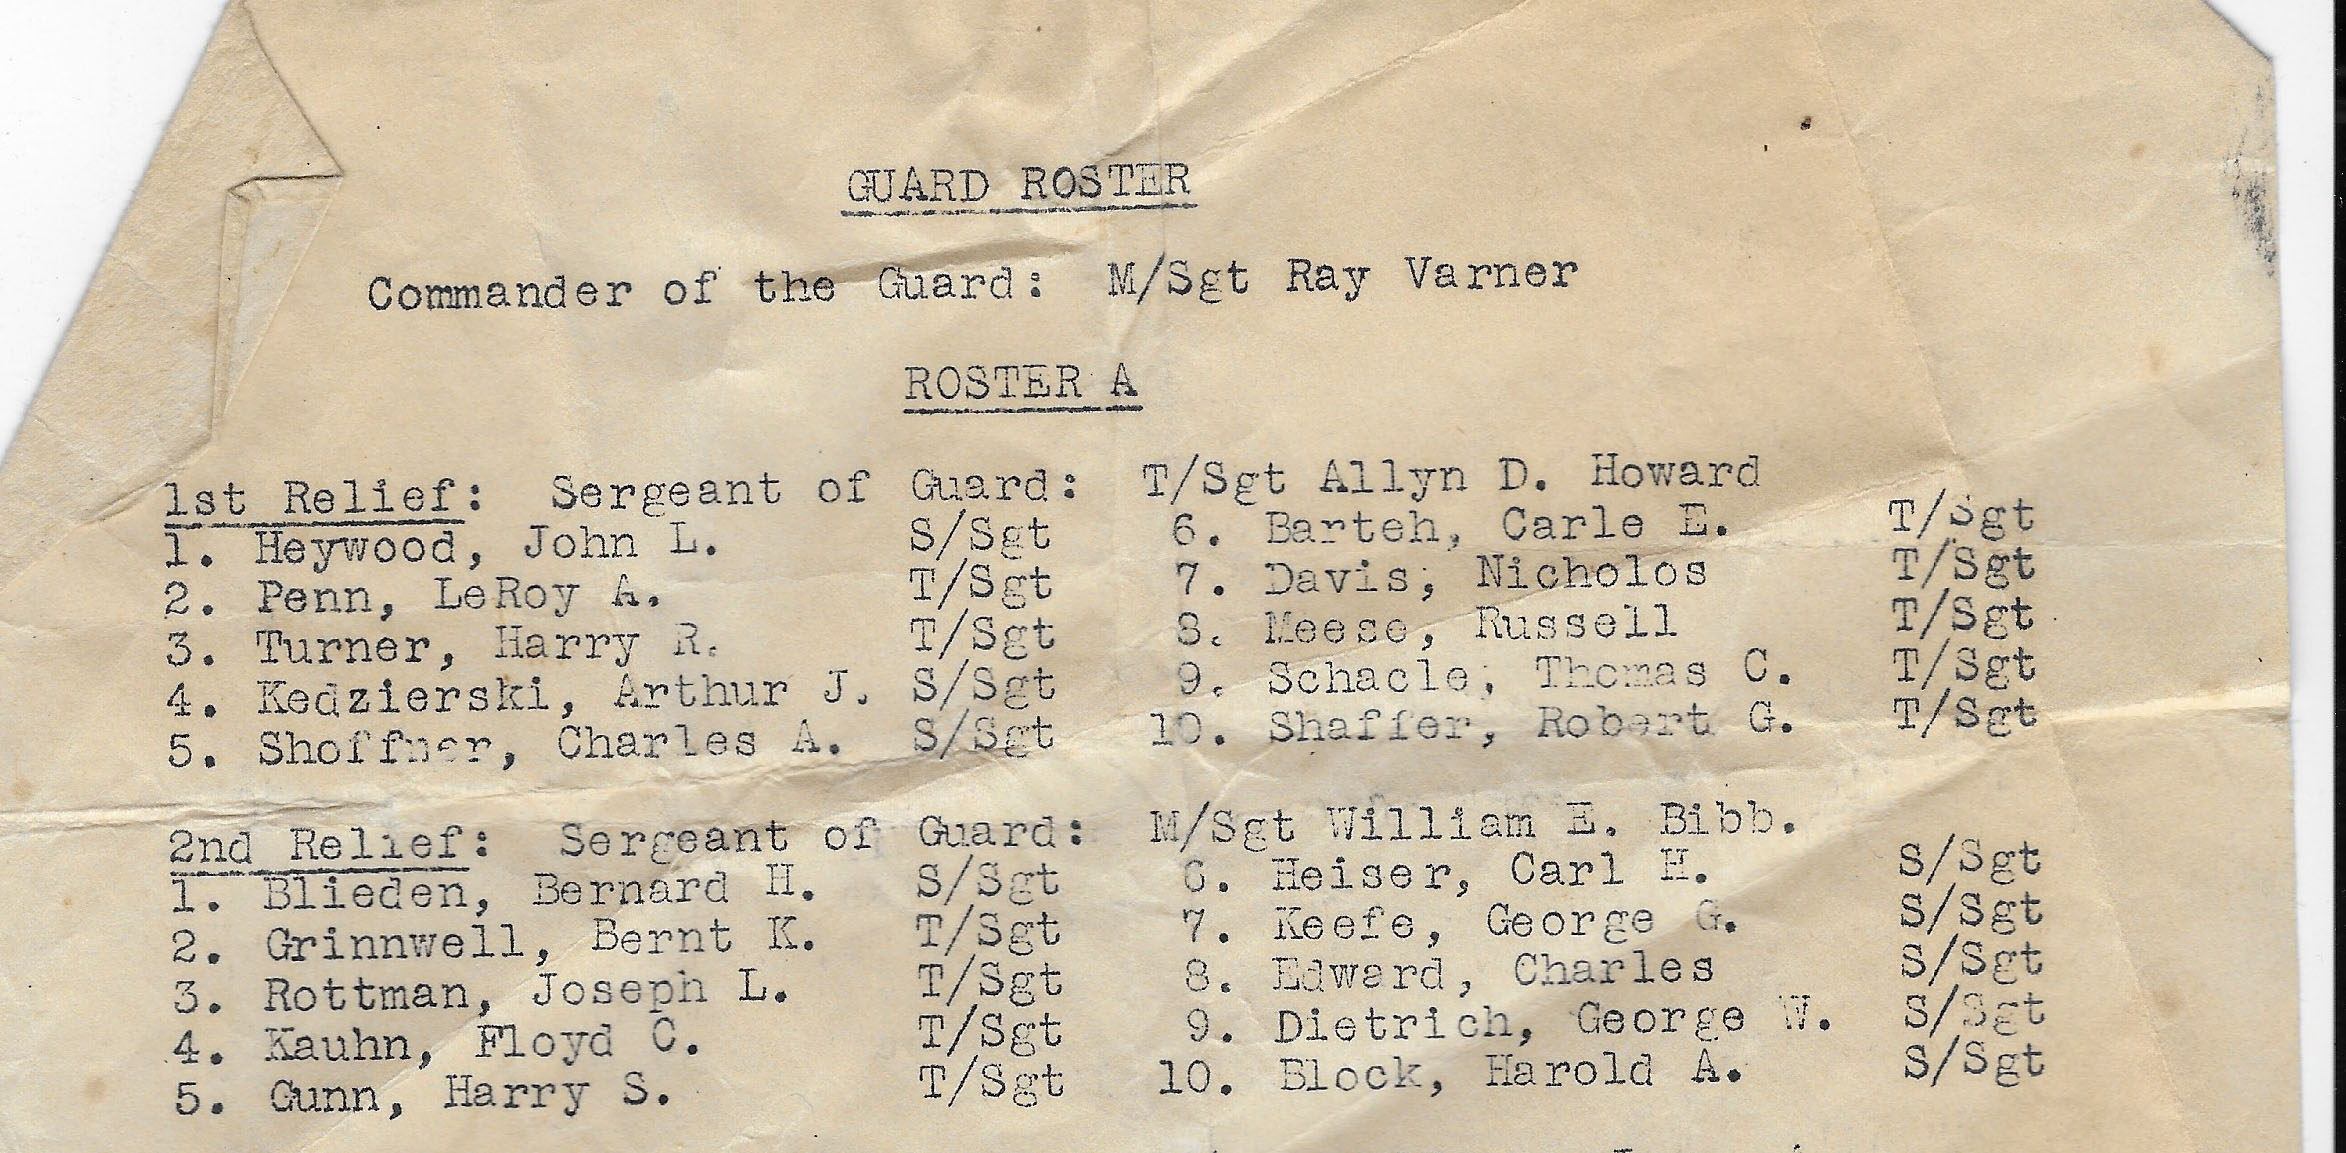 WWI PAcific Front Guard Duty List